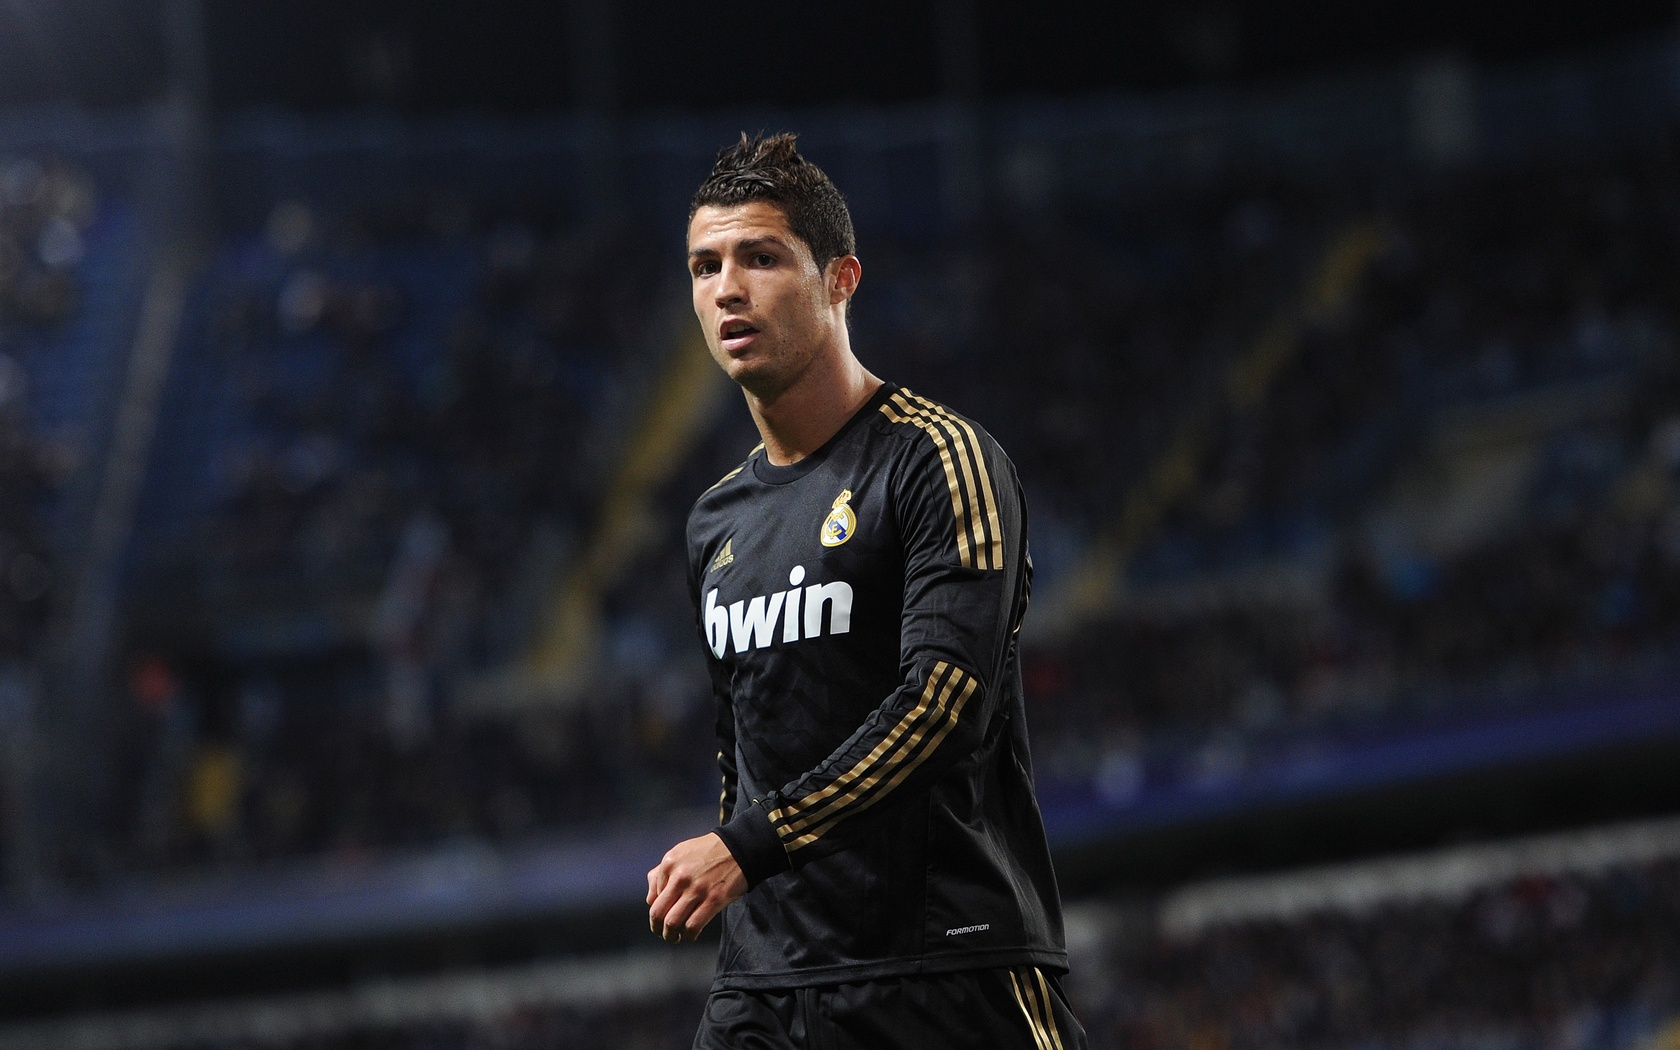 Cristiano Ronaldo Real Madrid Wallpapers 1680x1050 453867